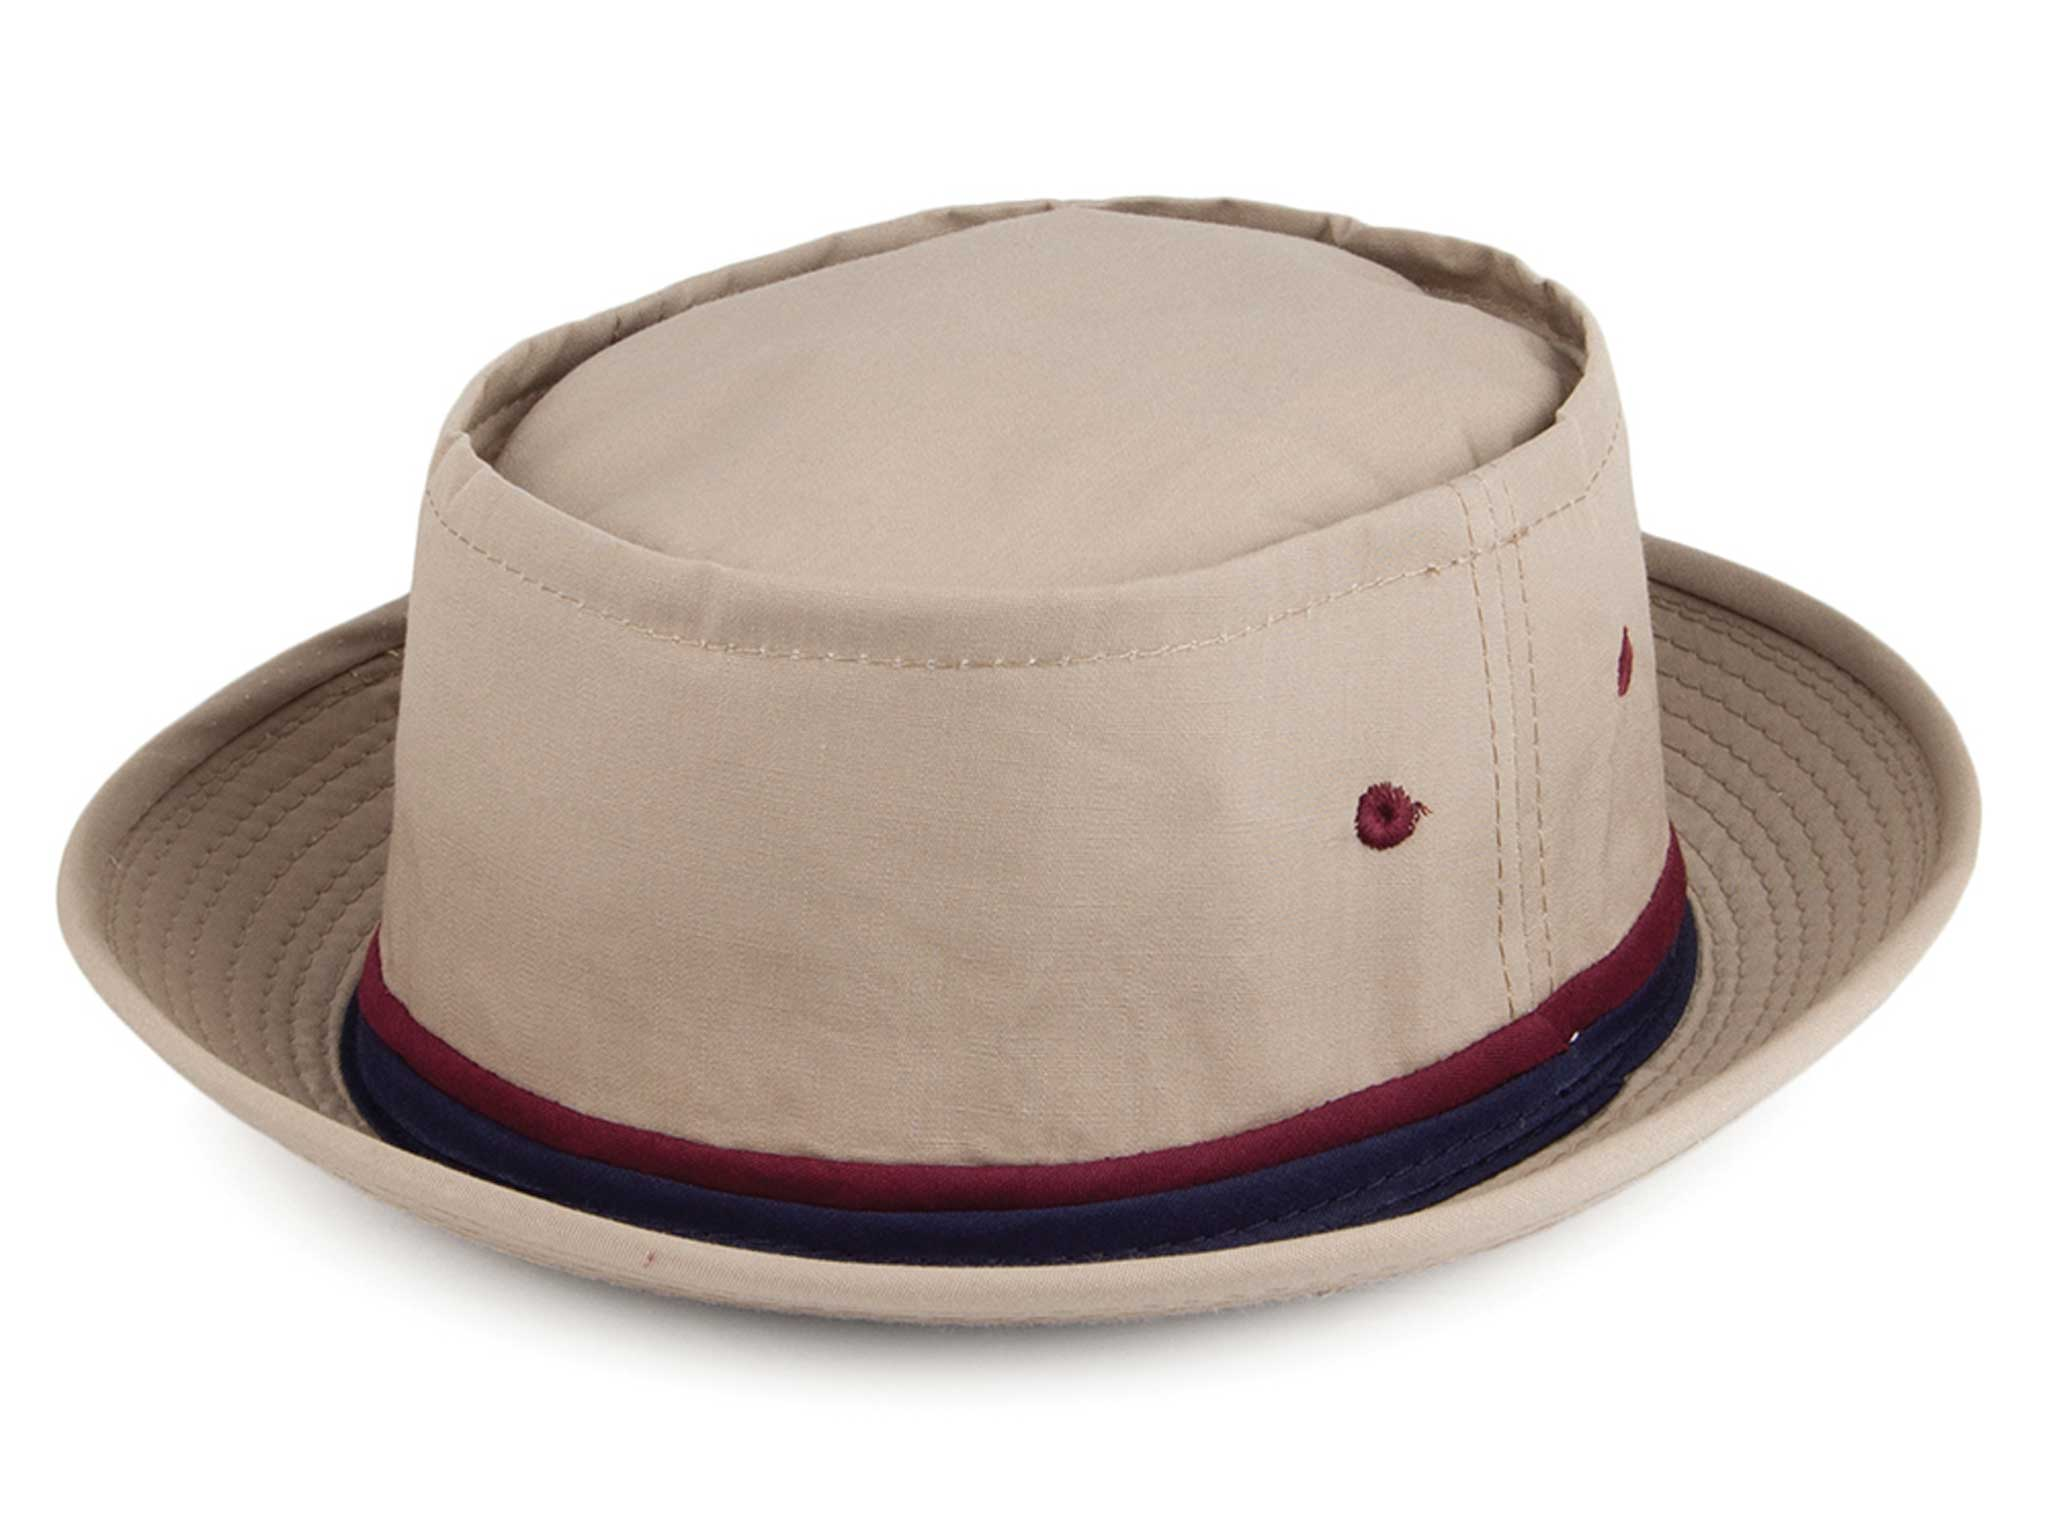 de20a933dc4 This bucket hat will protect against crispy